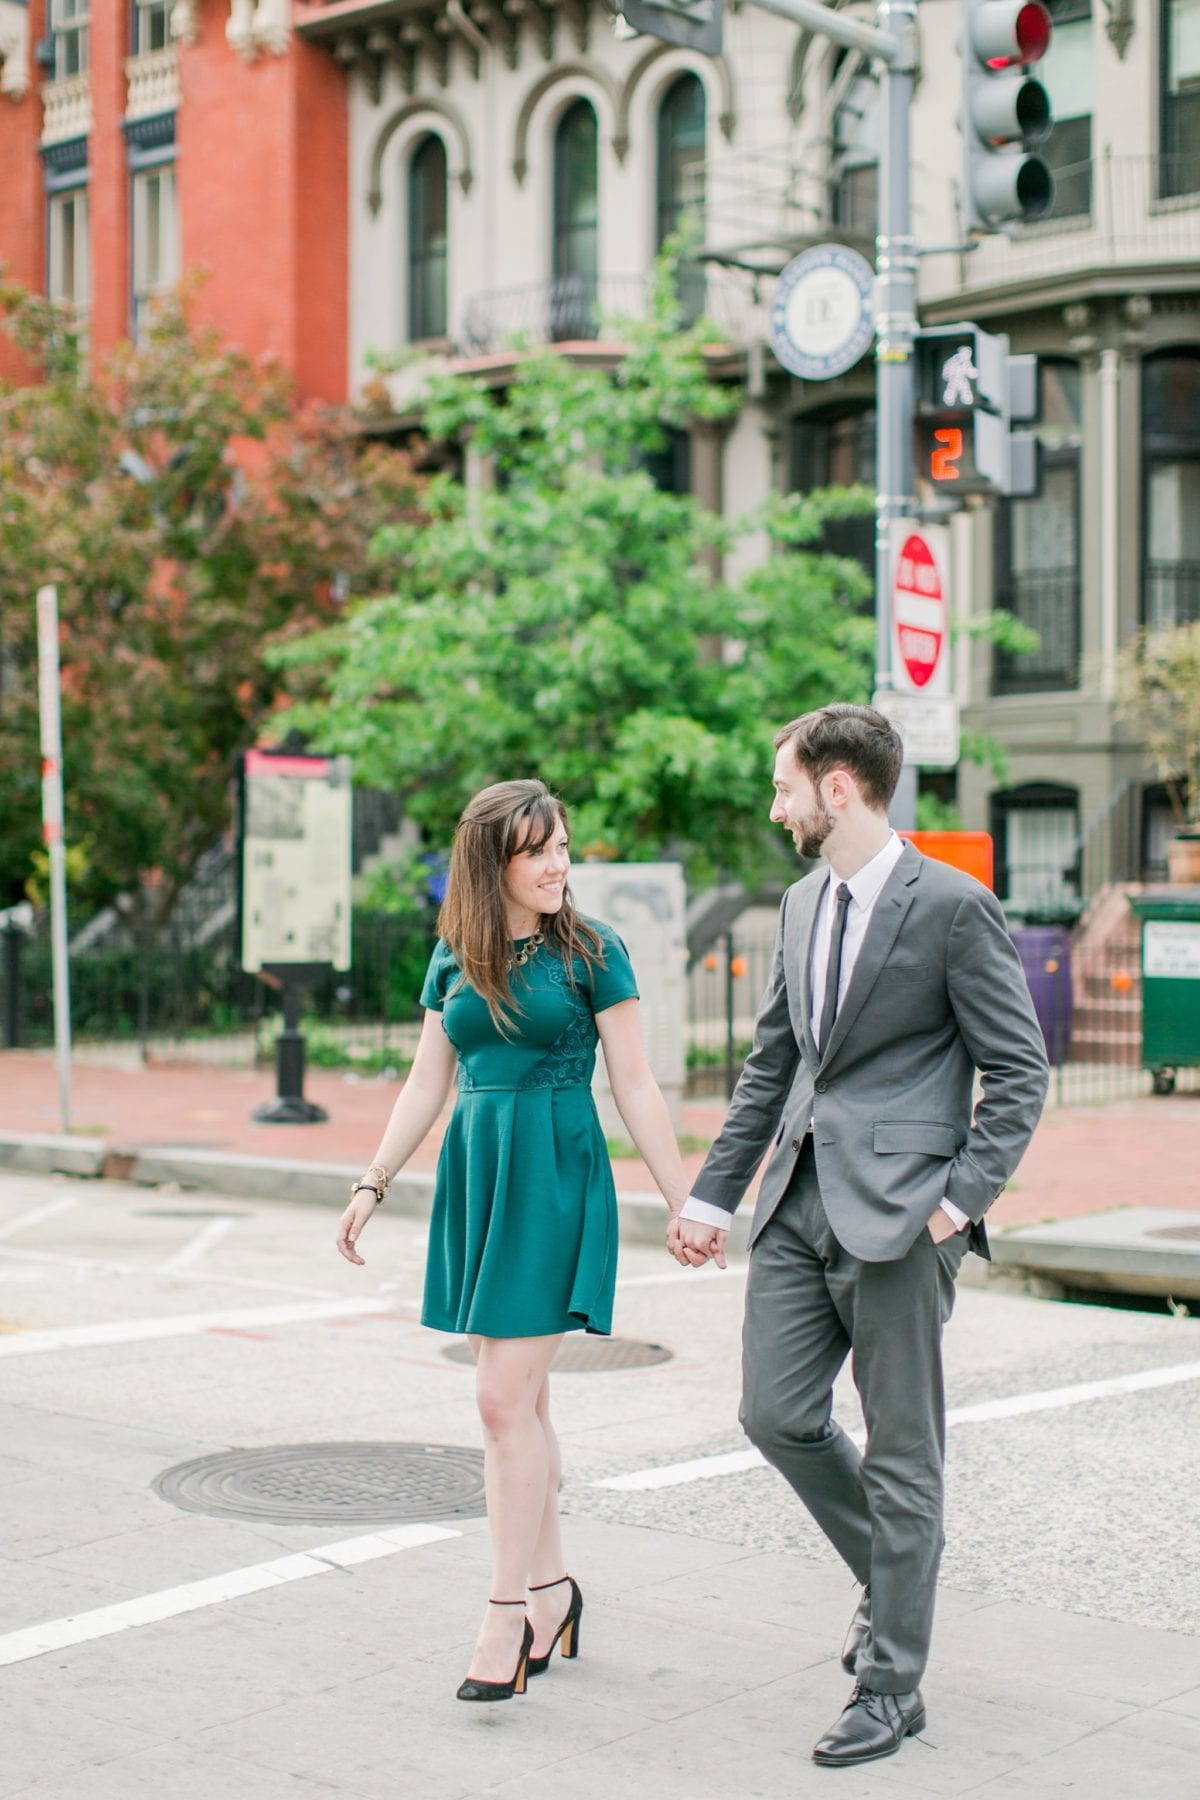 Downtown Washington DC Engagement Photos Megan Kelsey Photography Virginia Wedding Photographer Erin & Mike-0762.jpg